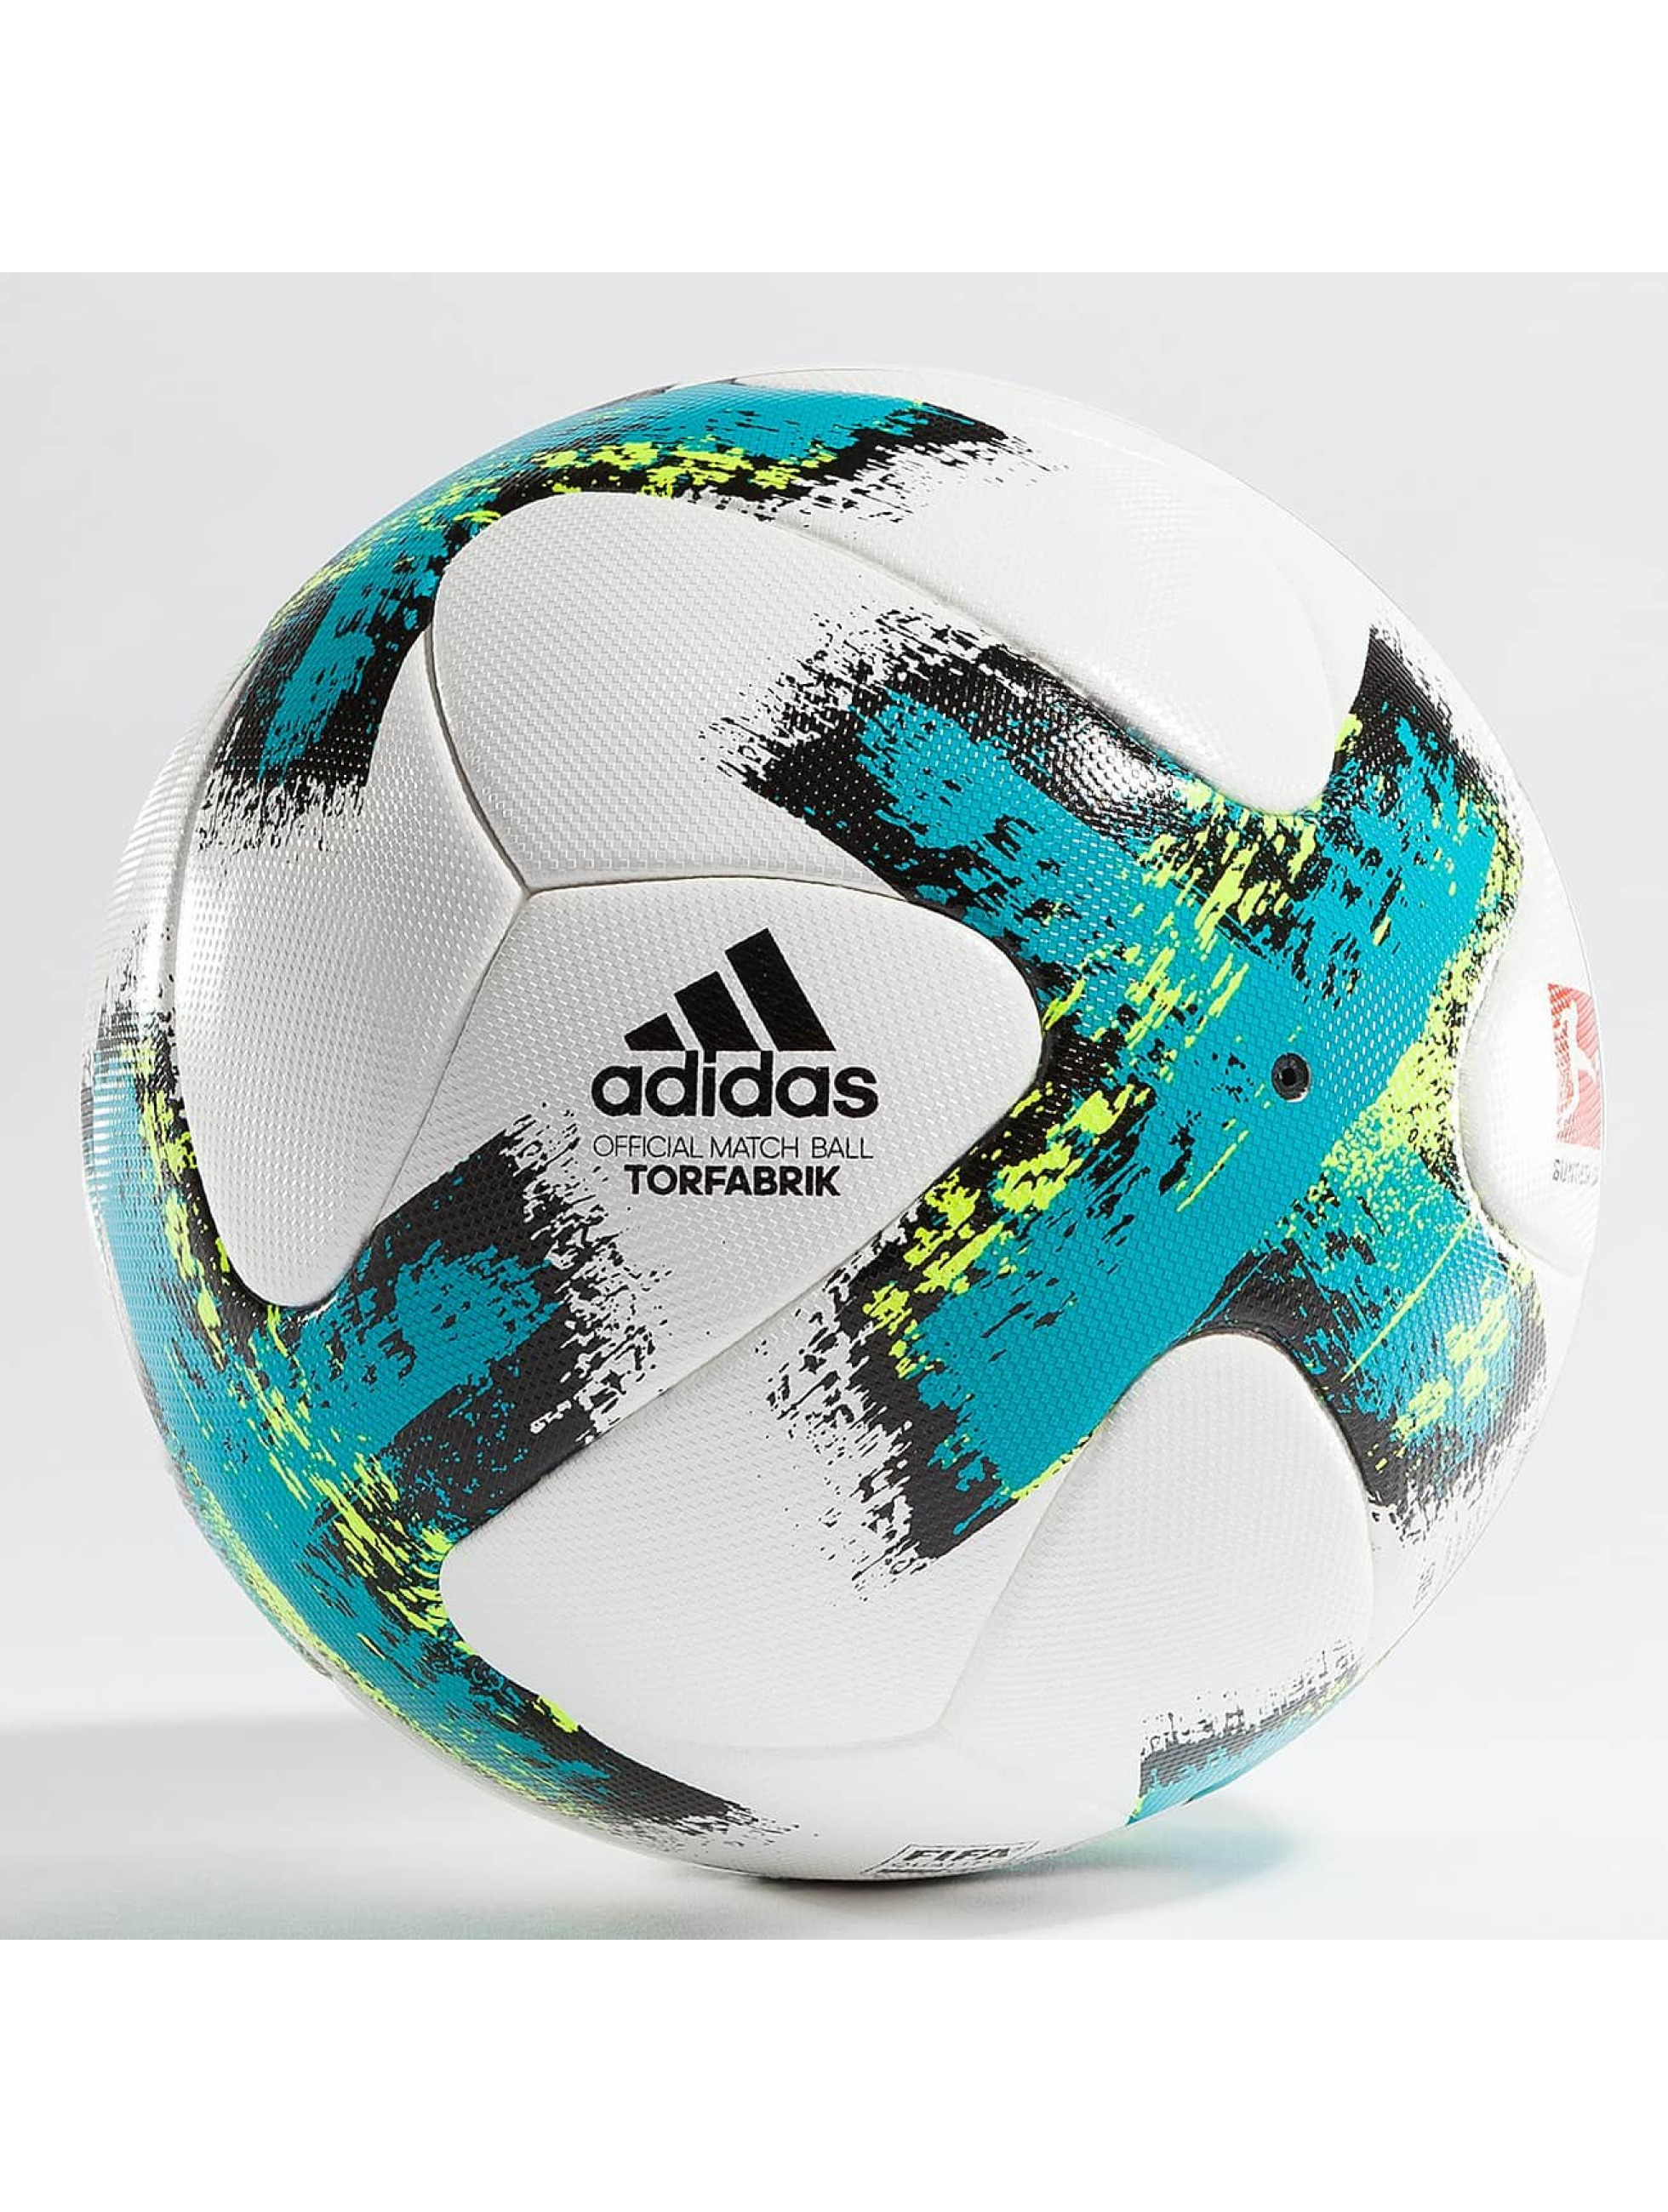 adidas Performance Männer,Frauen,Kinder Ball Torfabrik Offical Match Ball in weiß